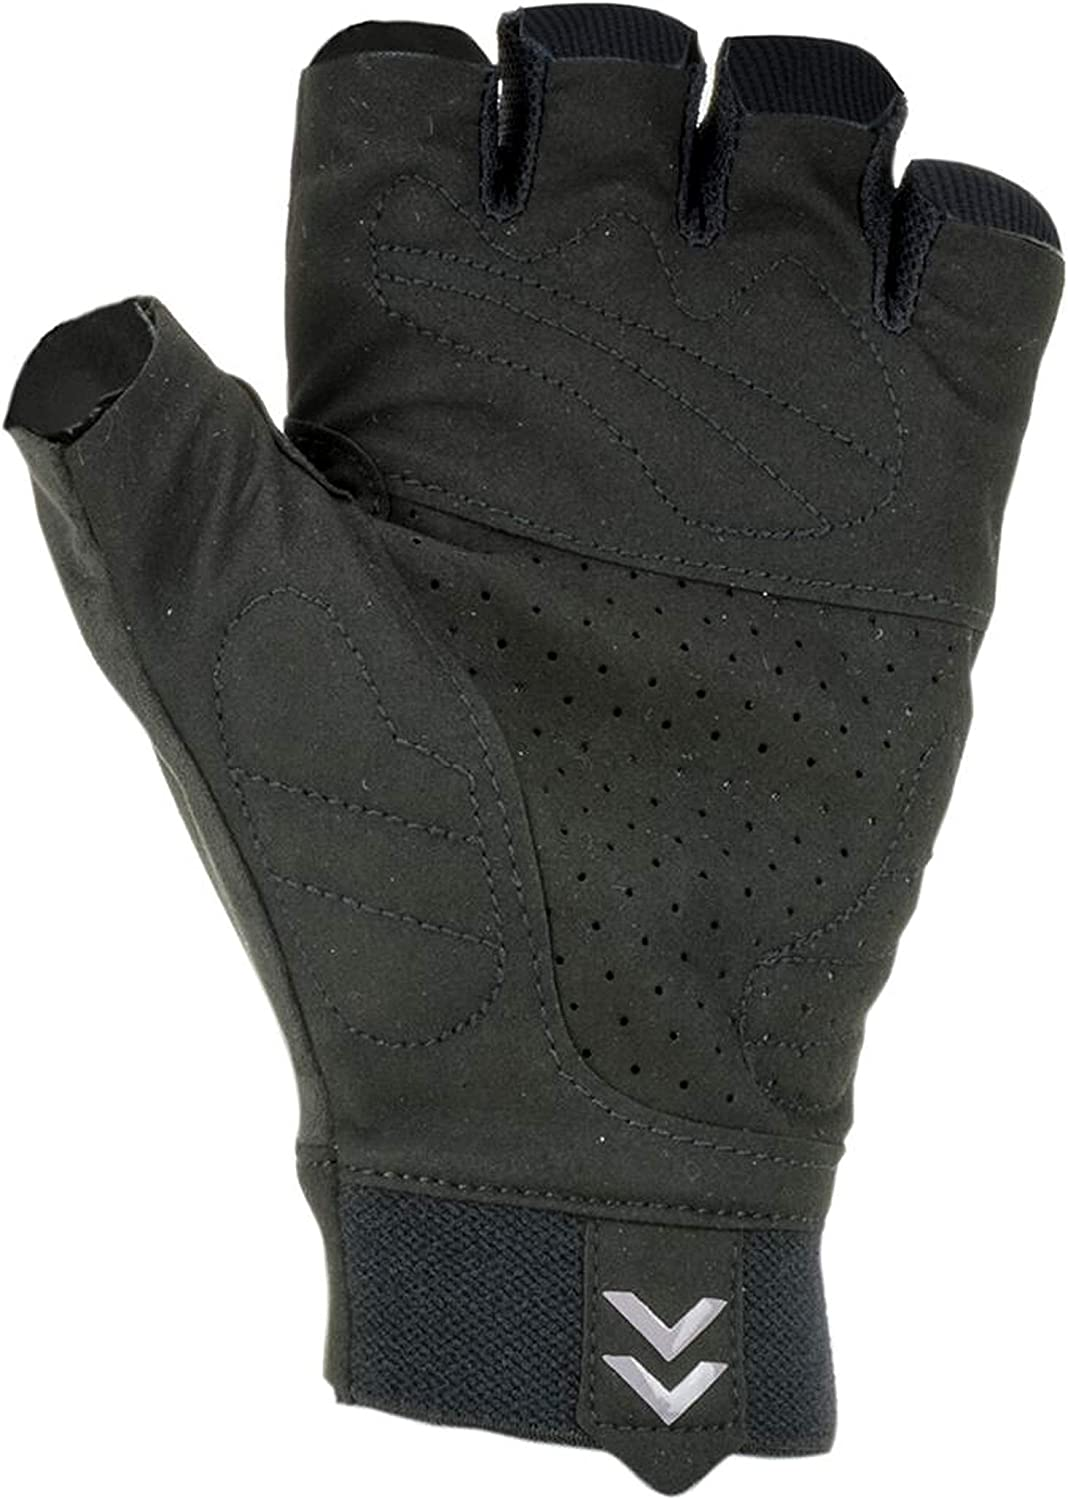 SealSkinz Mens Fingerless Solo Cycle Gloves